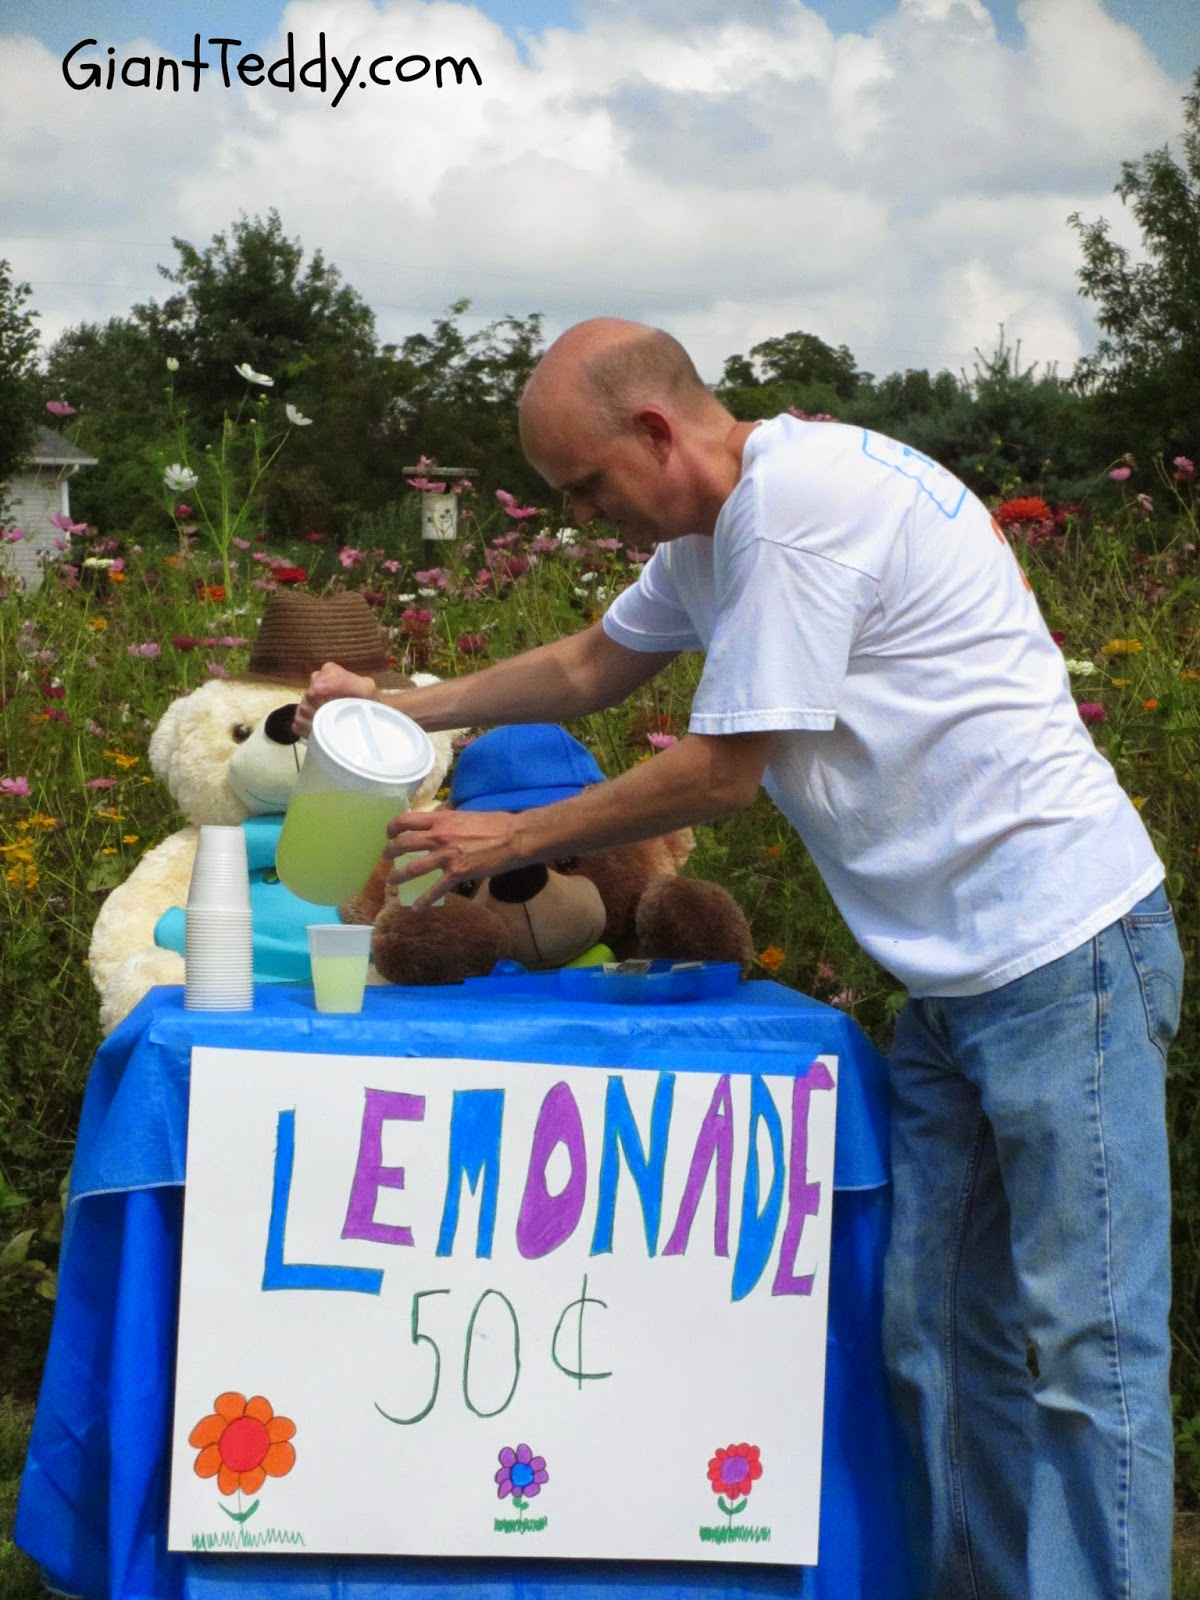 Giant Teddy bear lemonade stand